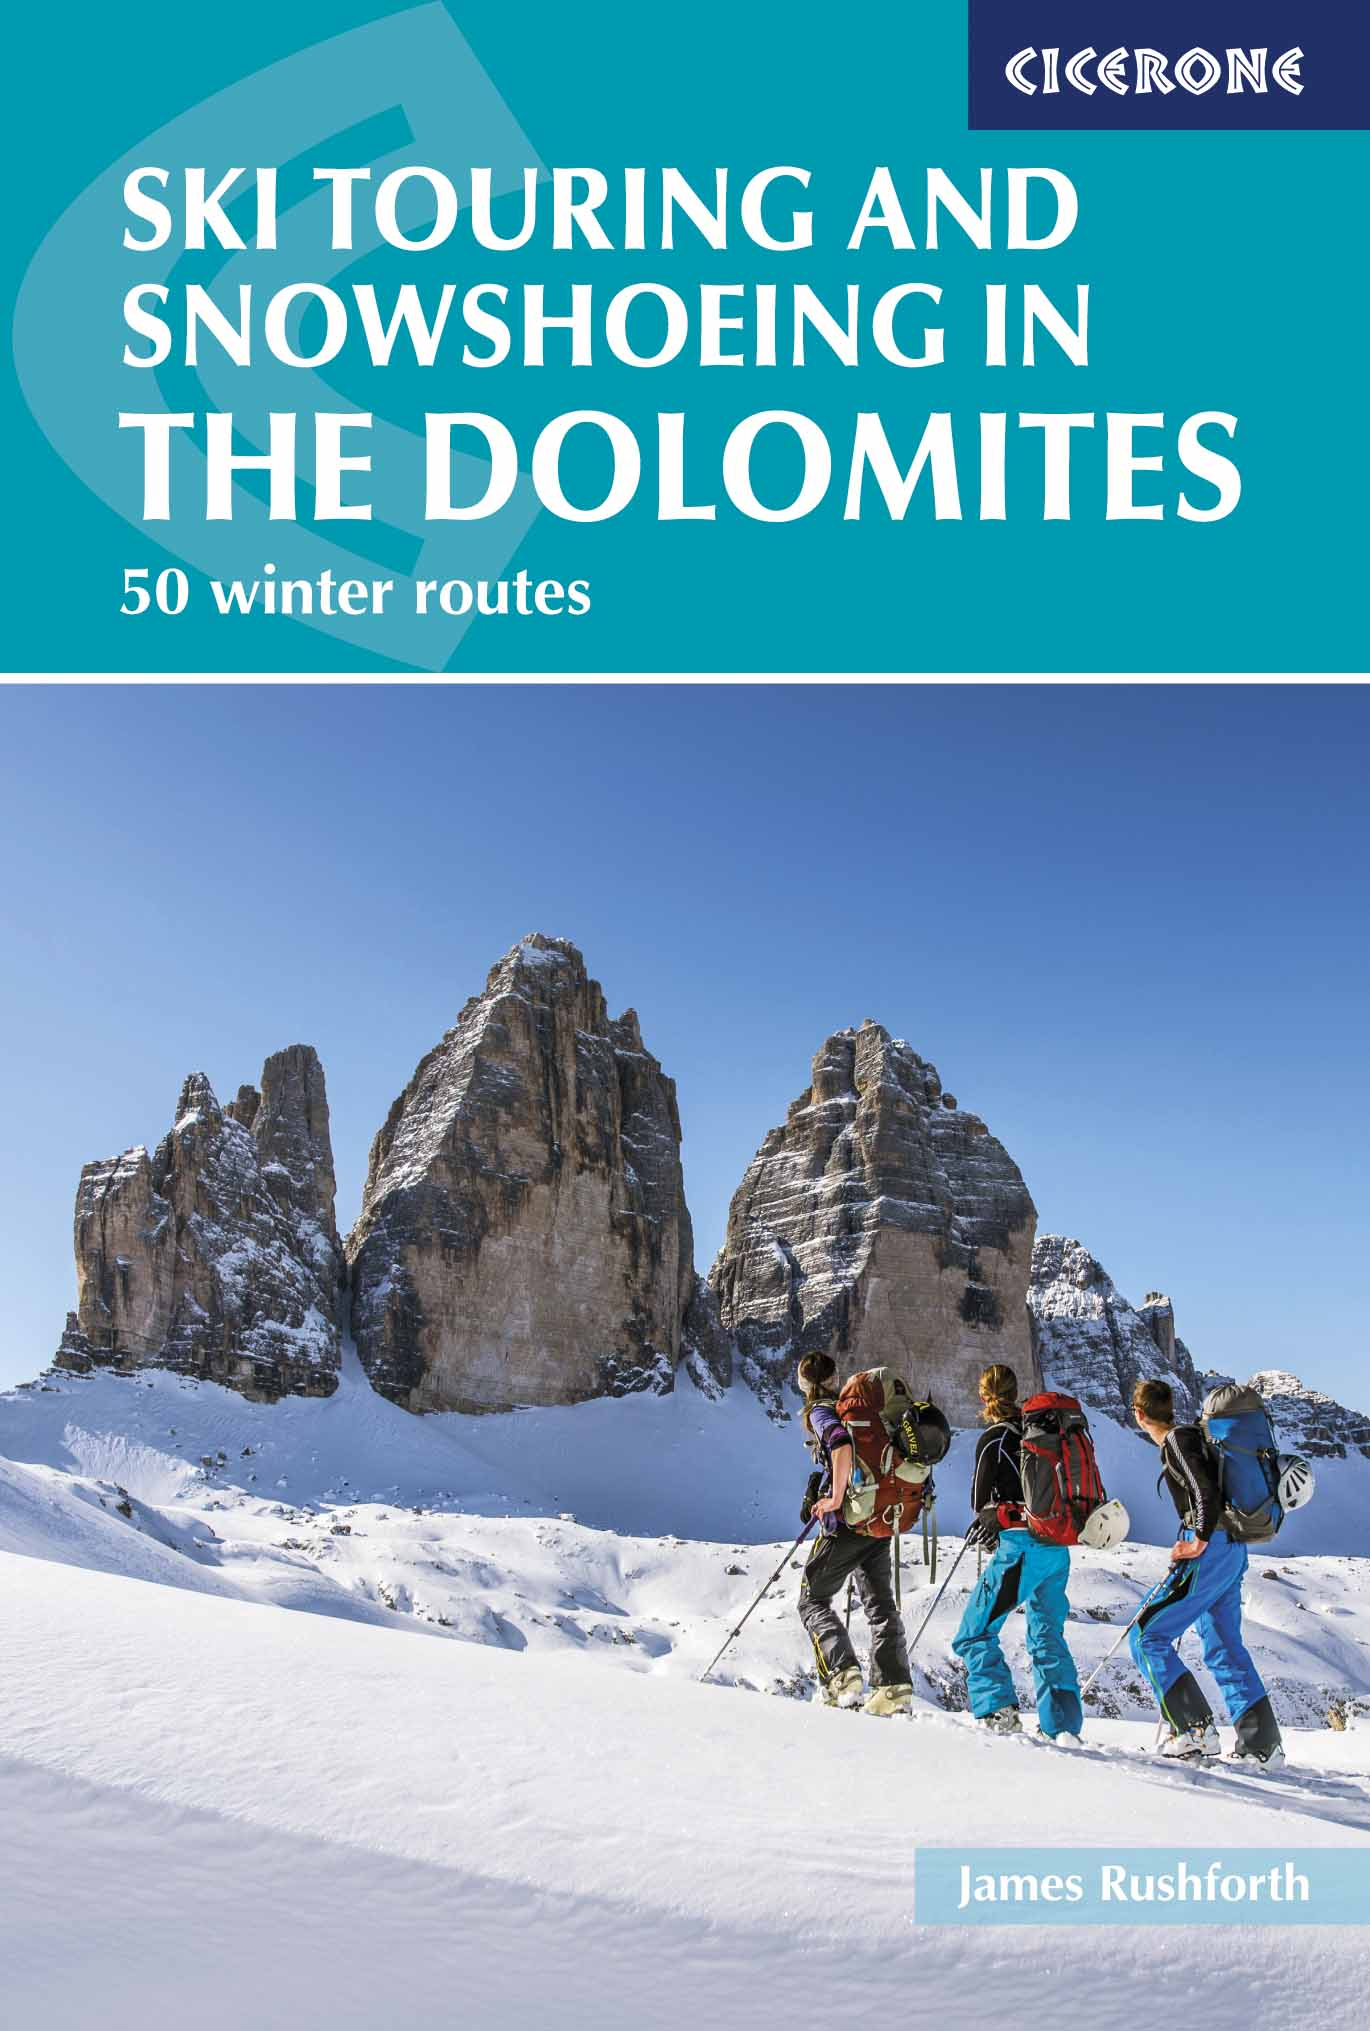 Dolomites ski touring and snowshoeing / 50 Winter routes